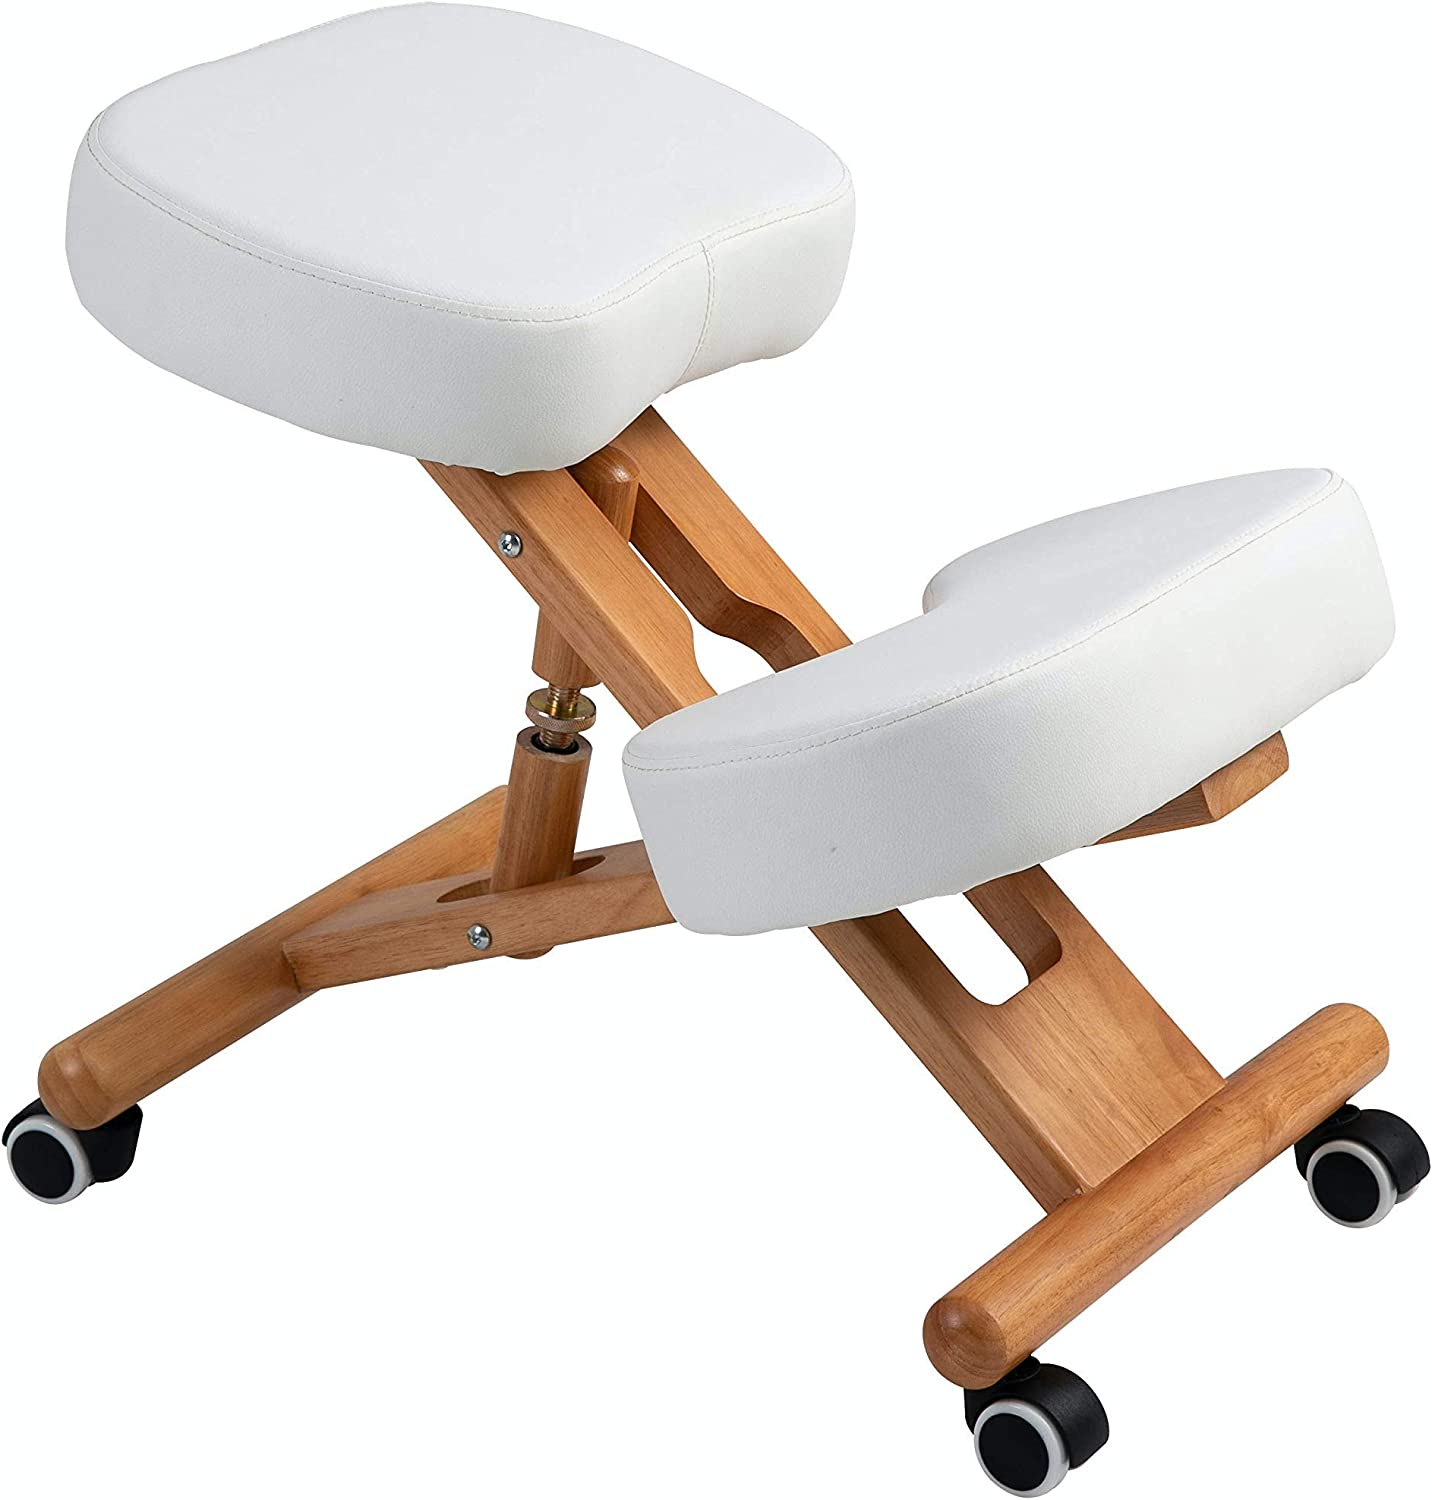 New! Dove (by Perfect Perch) - Beautiful Ergonomic Kneeling Chair, Adjustable Height with 3.5